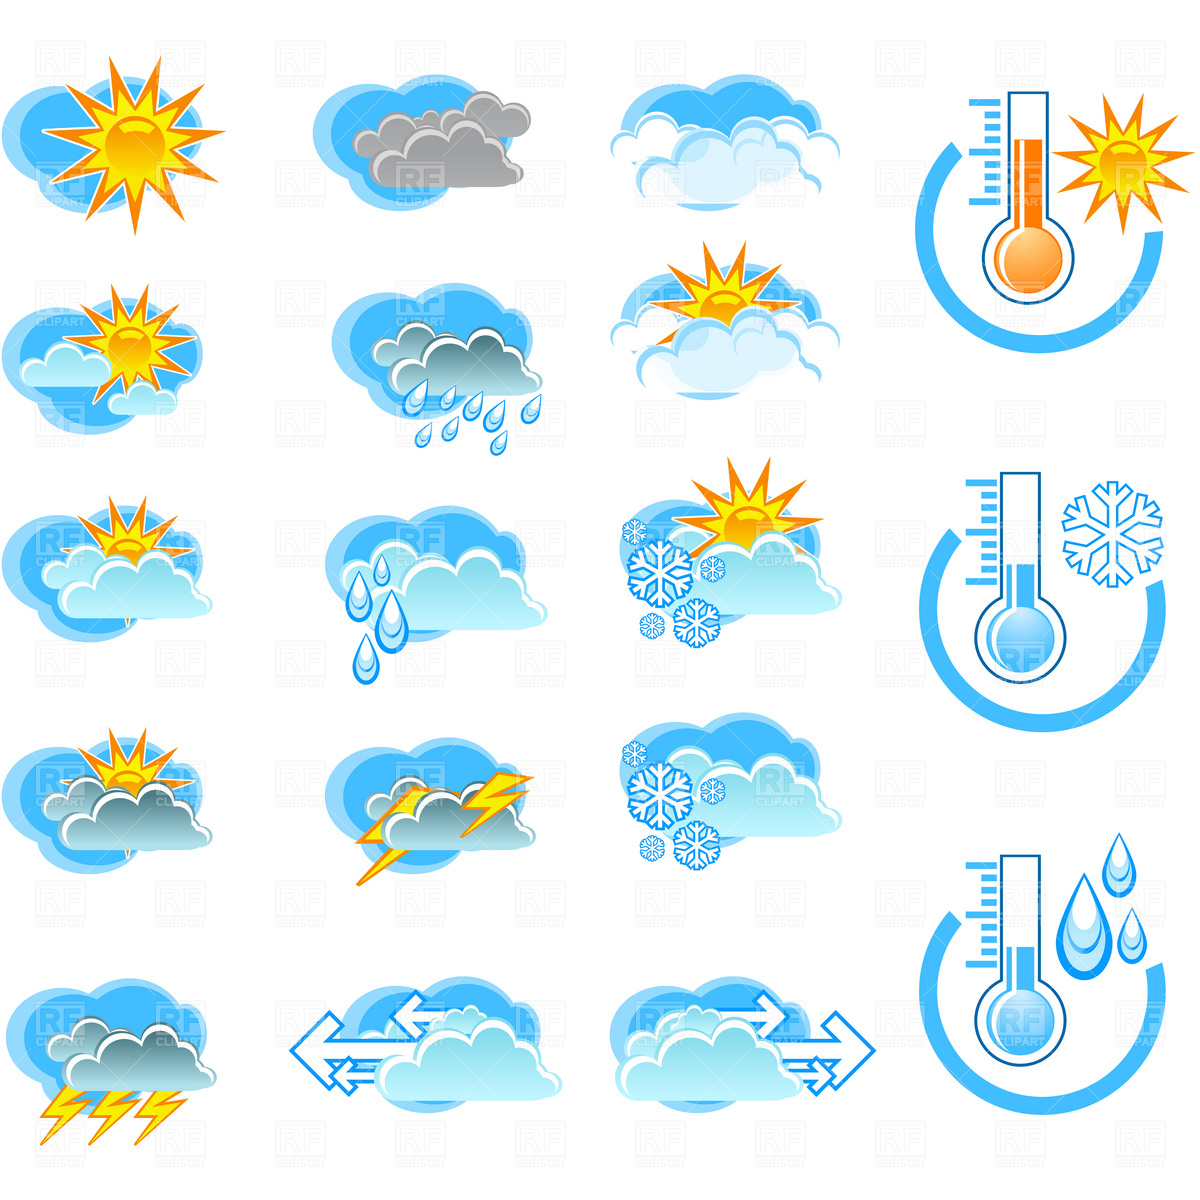 spring weather clipart - photo #33